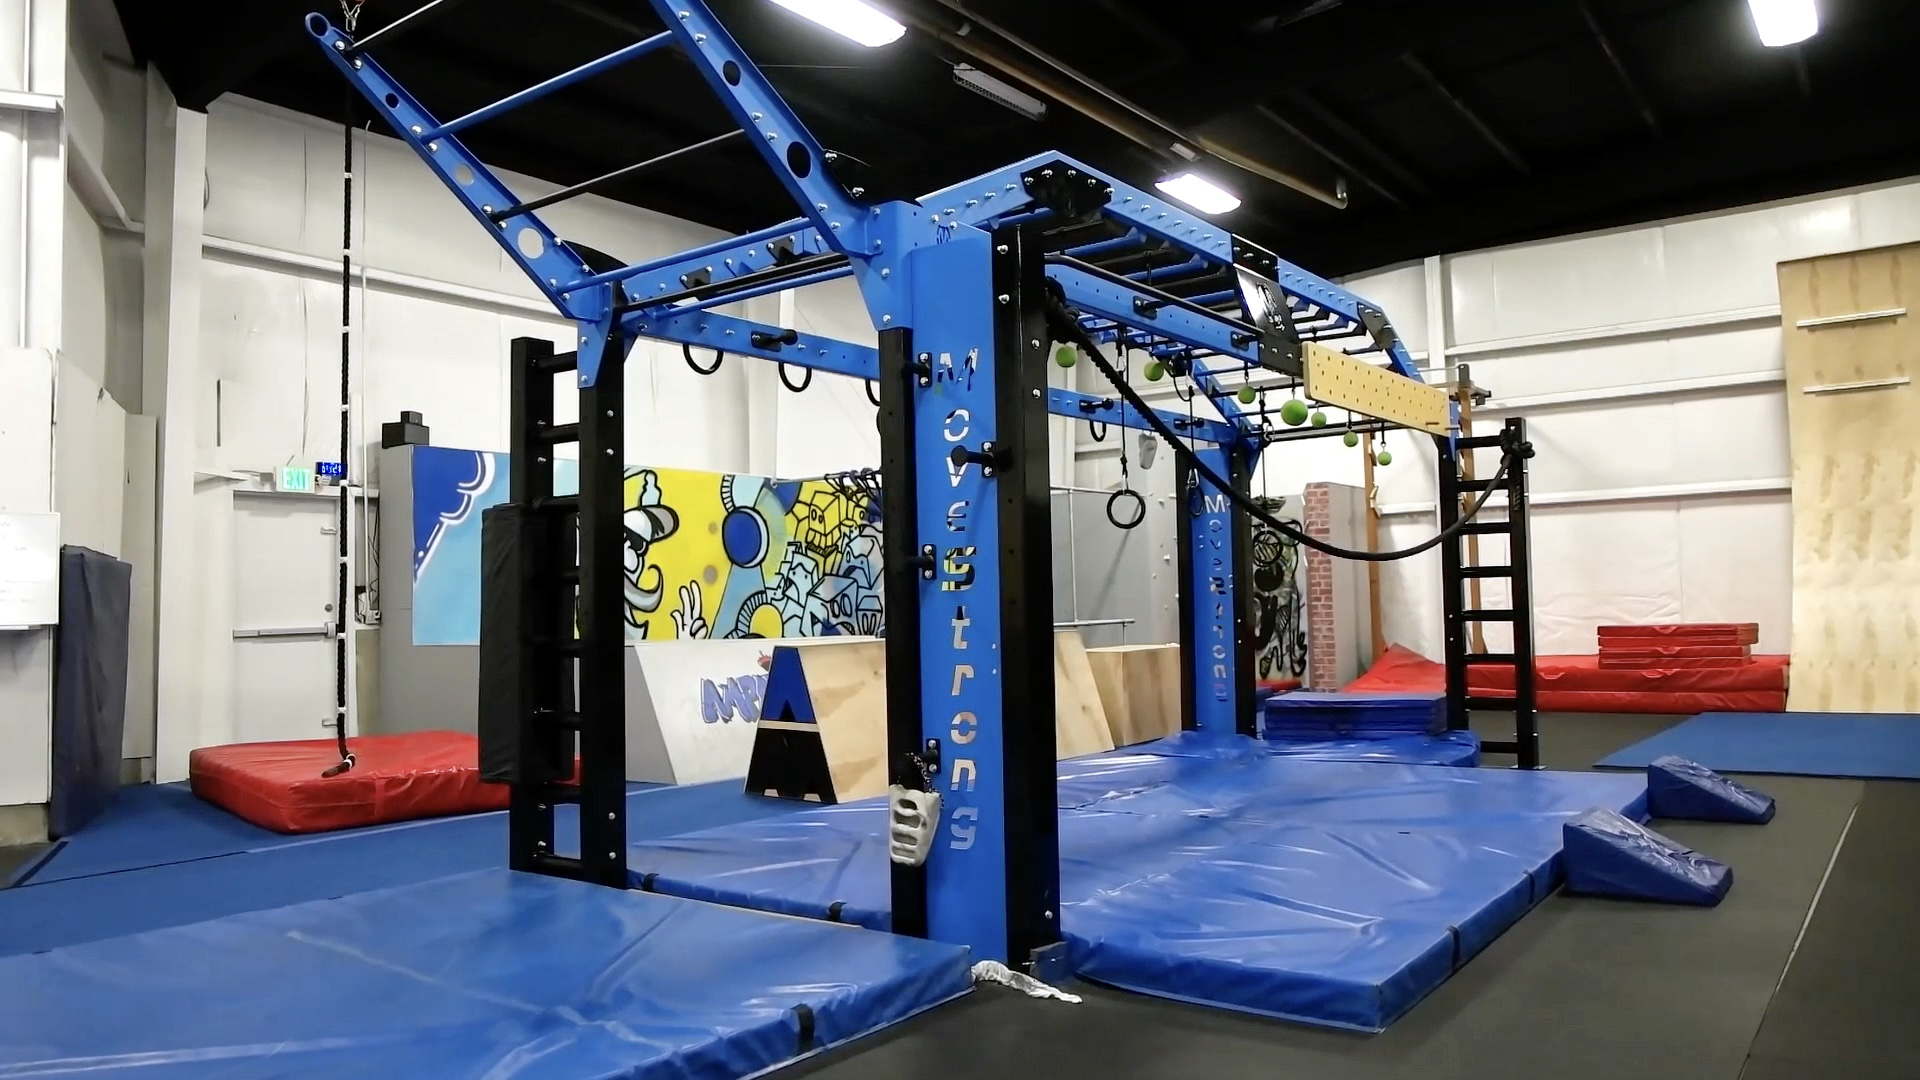 Copy of Ninja Warrior training facility with Movestrong Nova XL